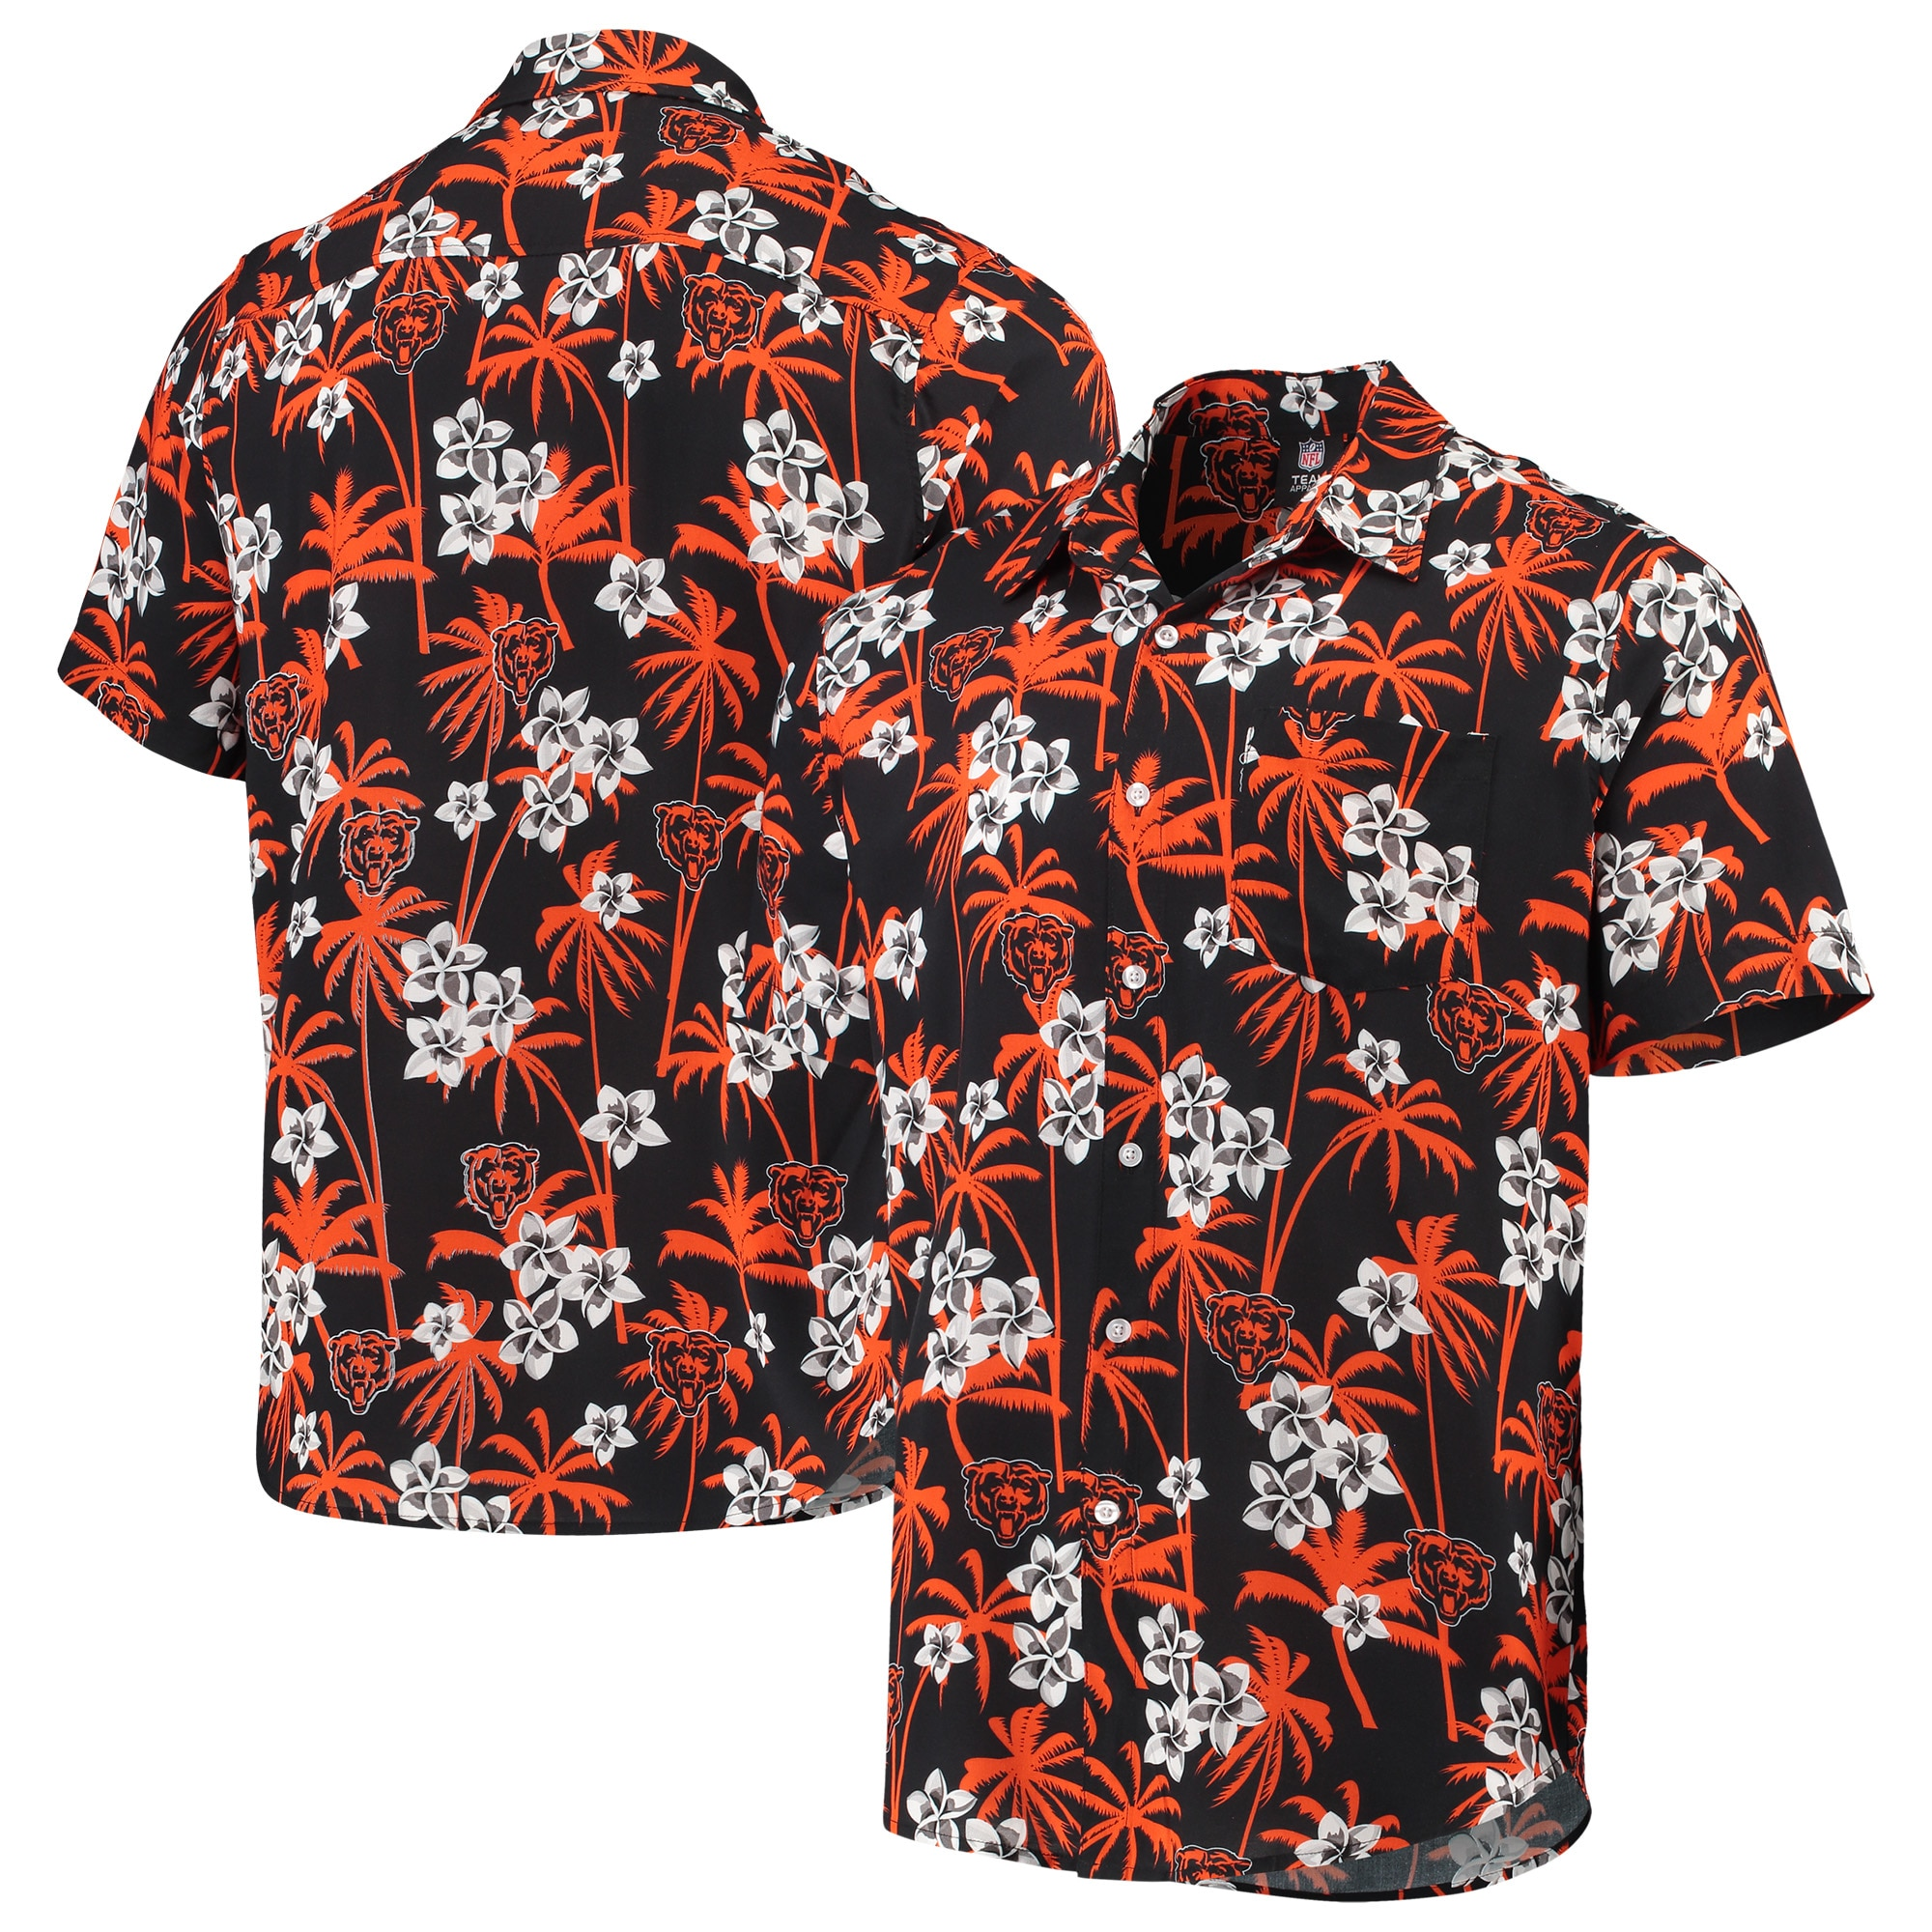 Chicago Bears Floral Woven Button-Up Shirt - Navy